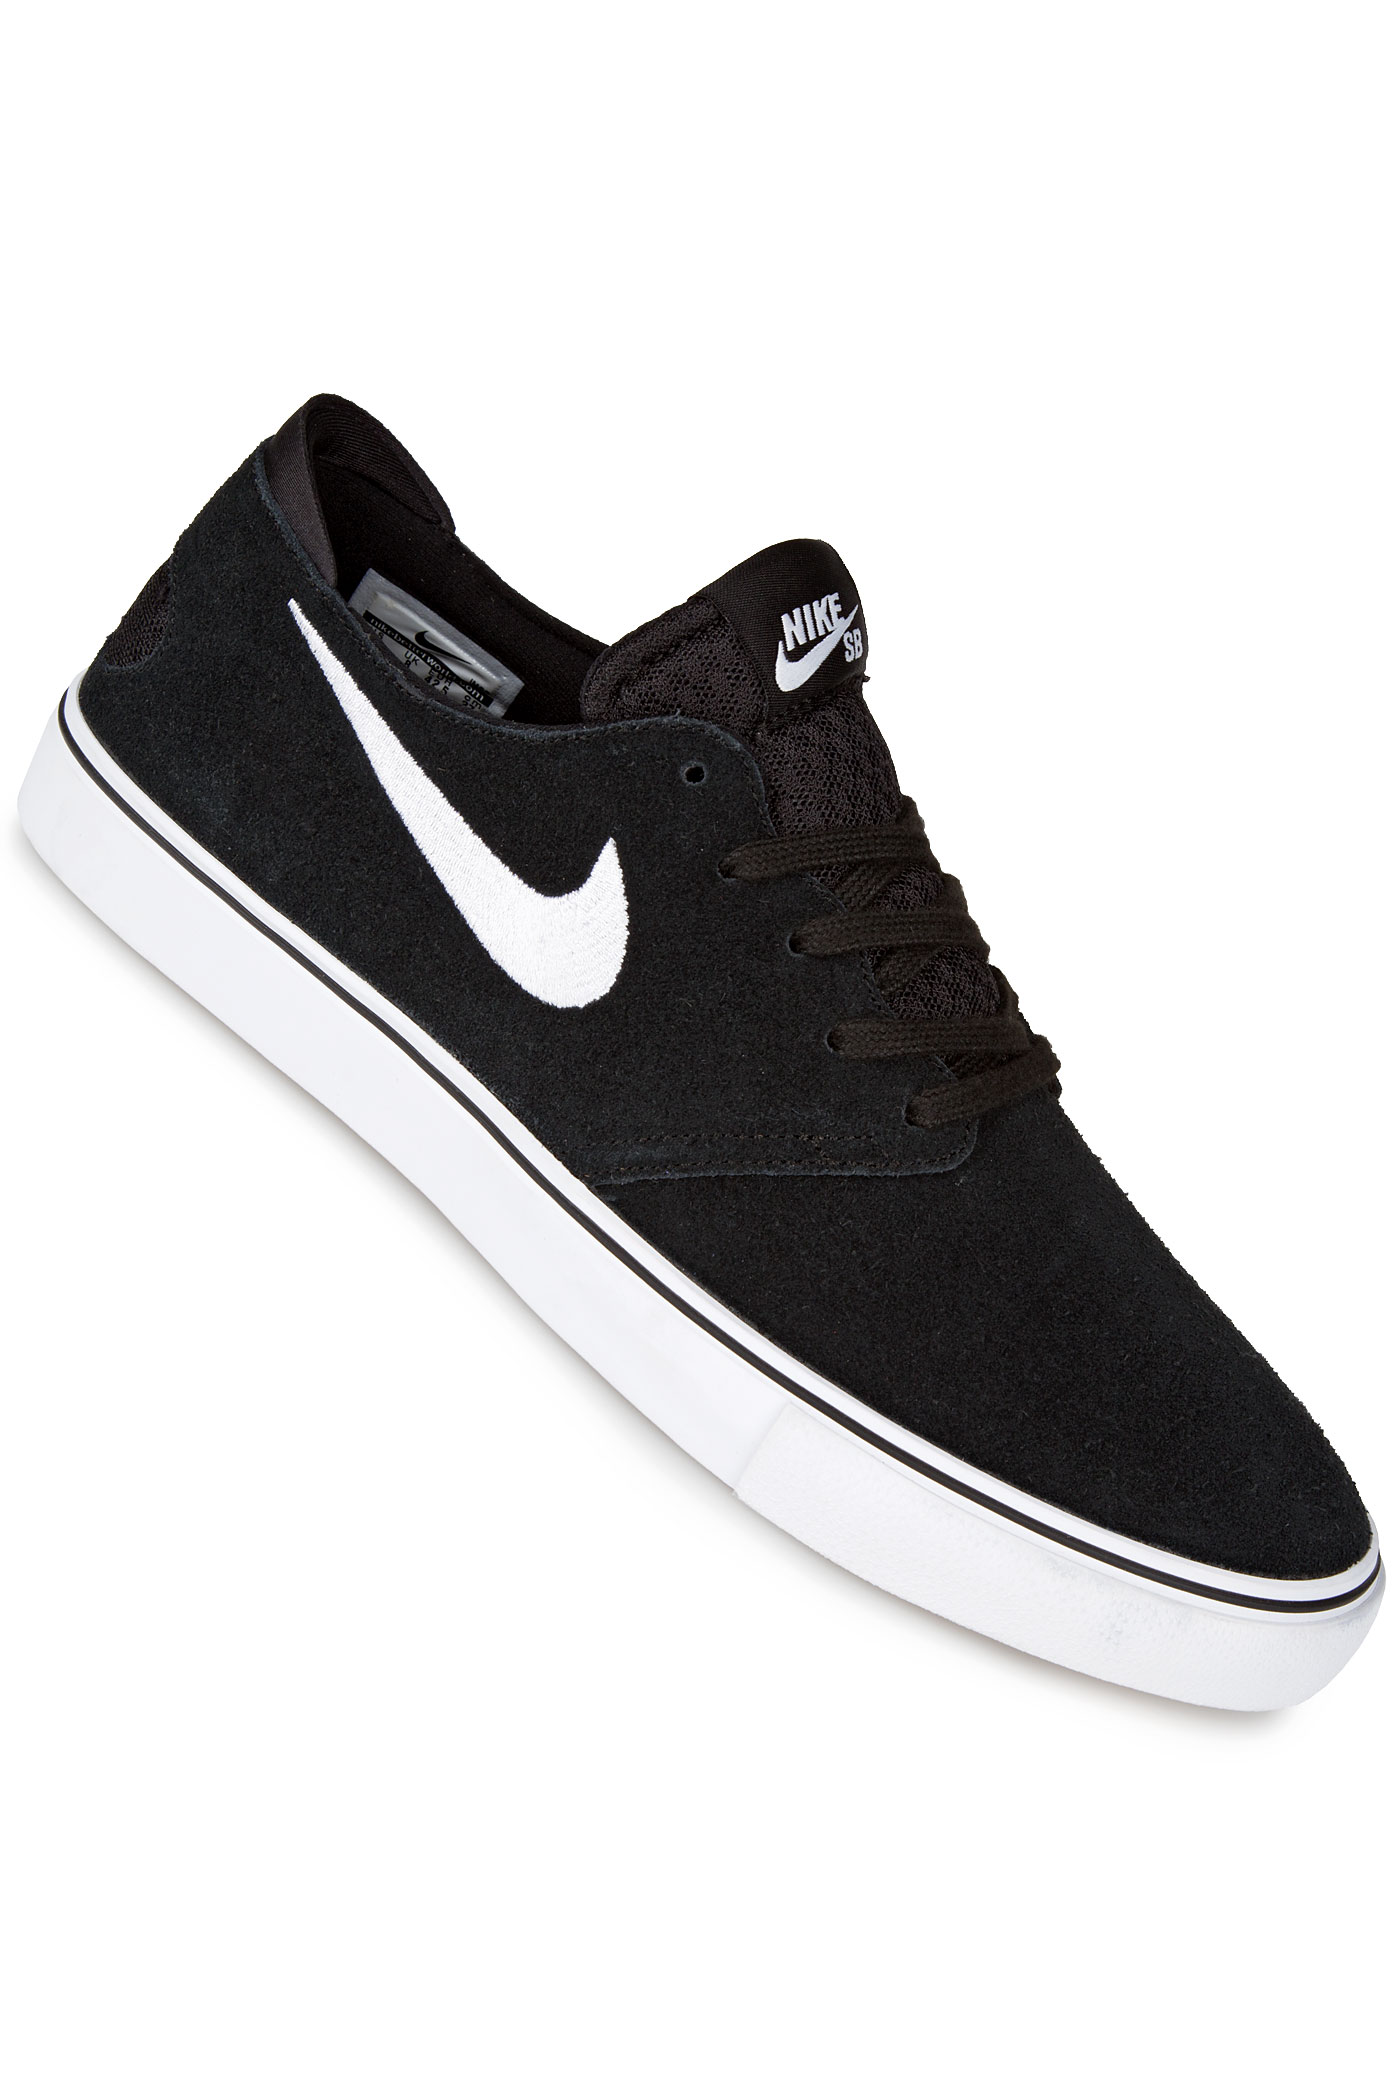 Black And Brown Nike Sb Shoes